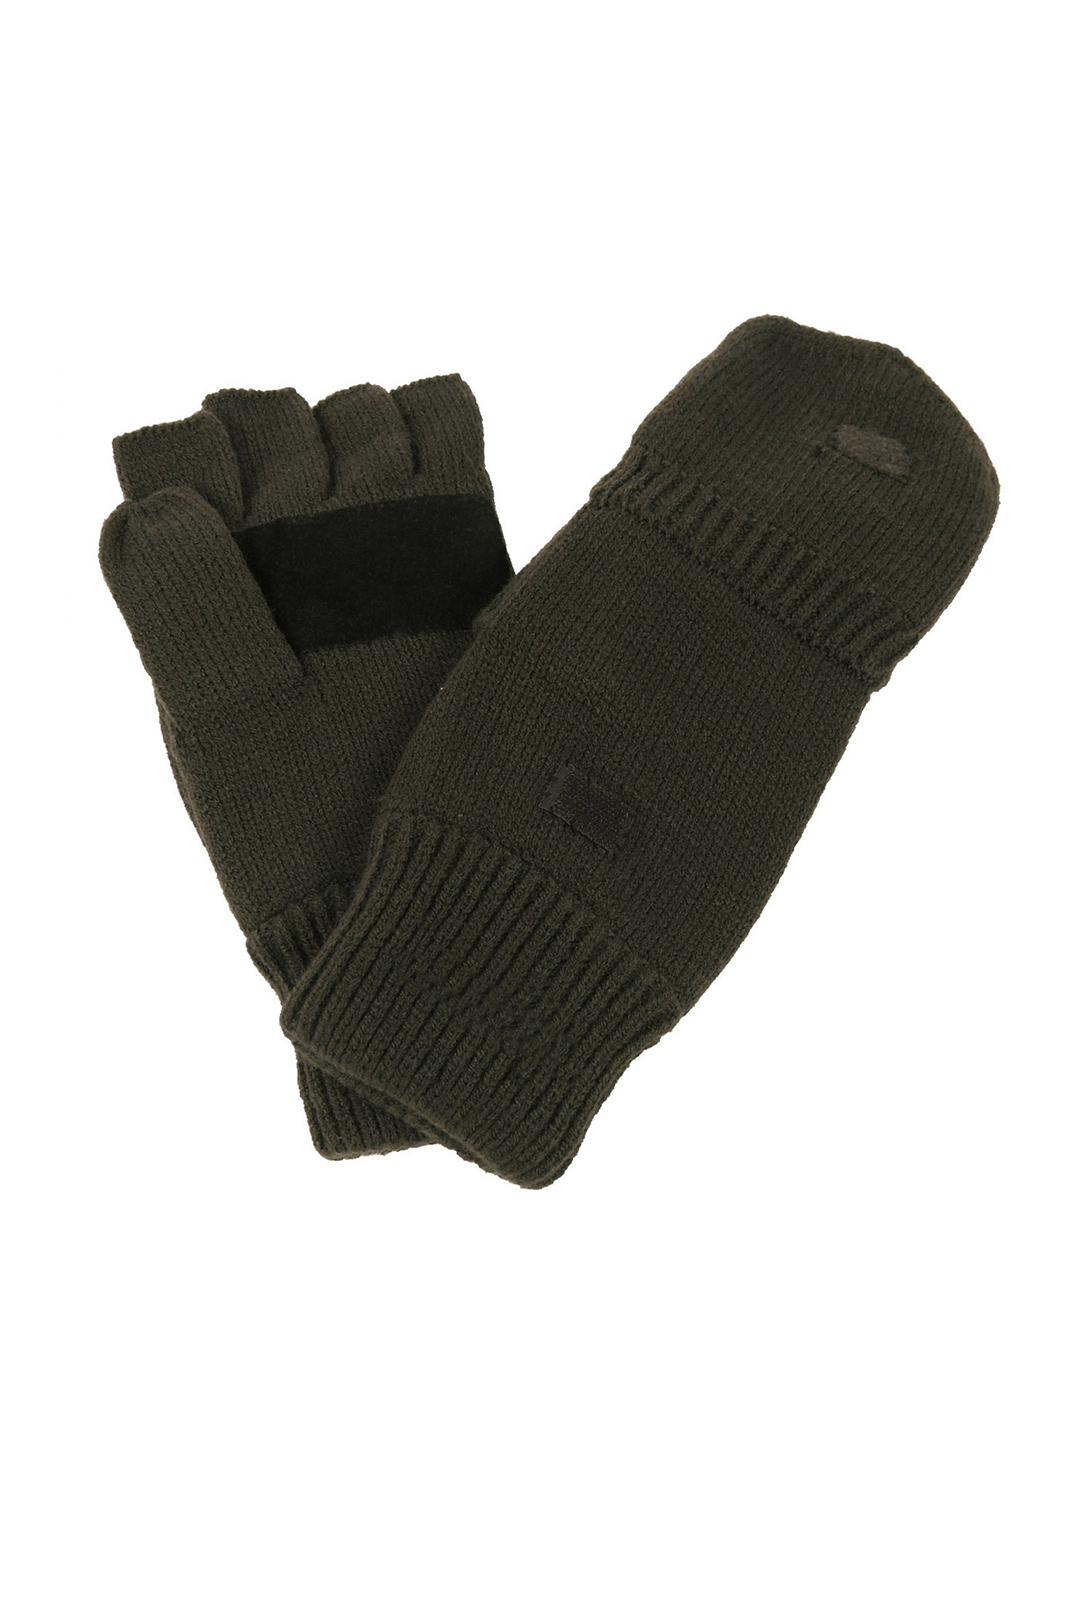 Knitted Finger/Thumb Gloves Olive Green